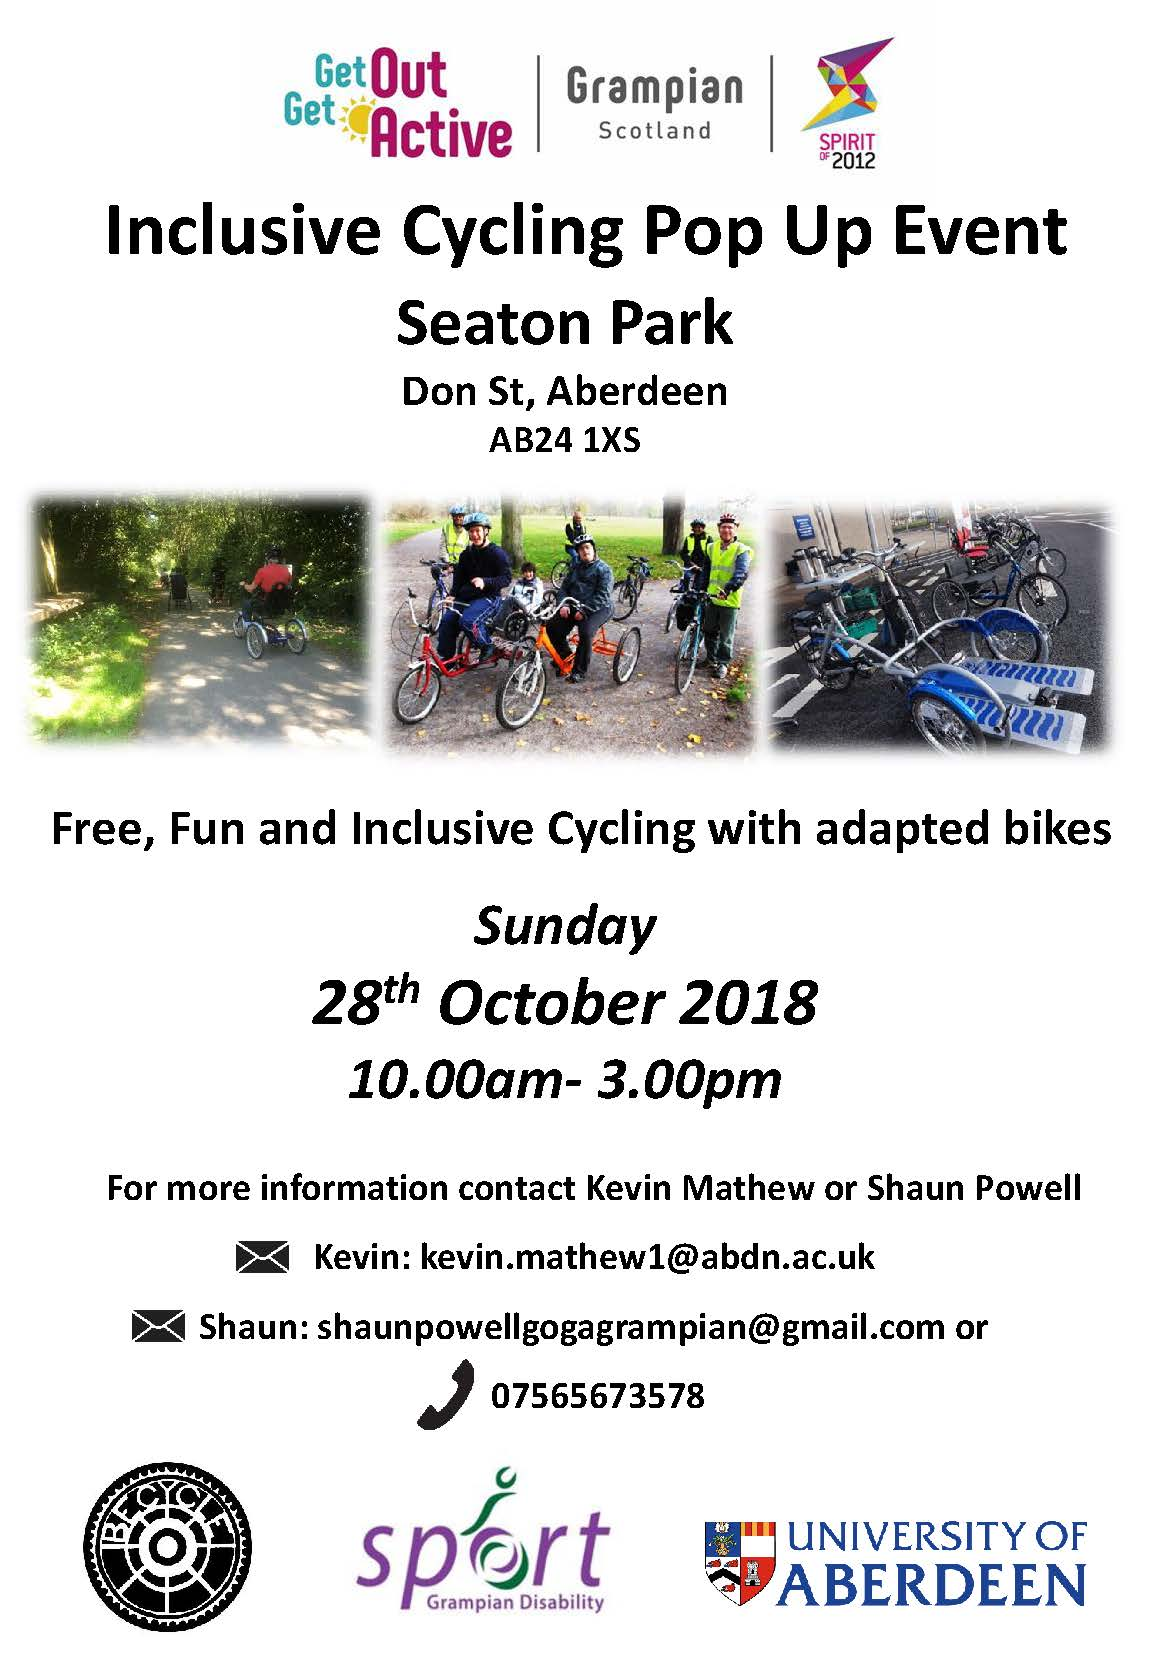 Inclusive Cycling Pop Up event – Aberdeen